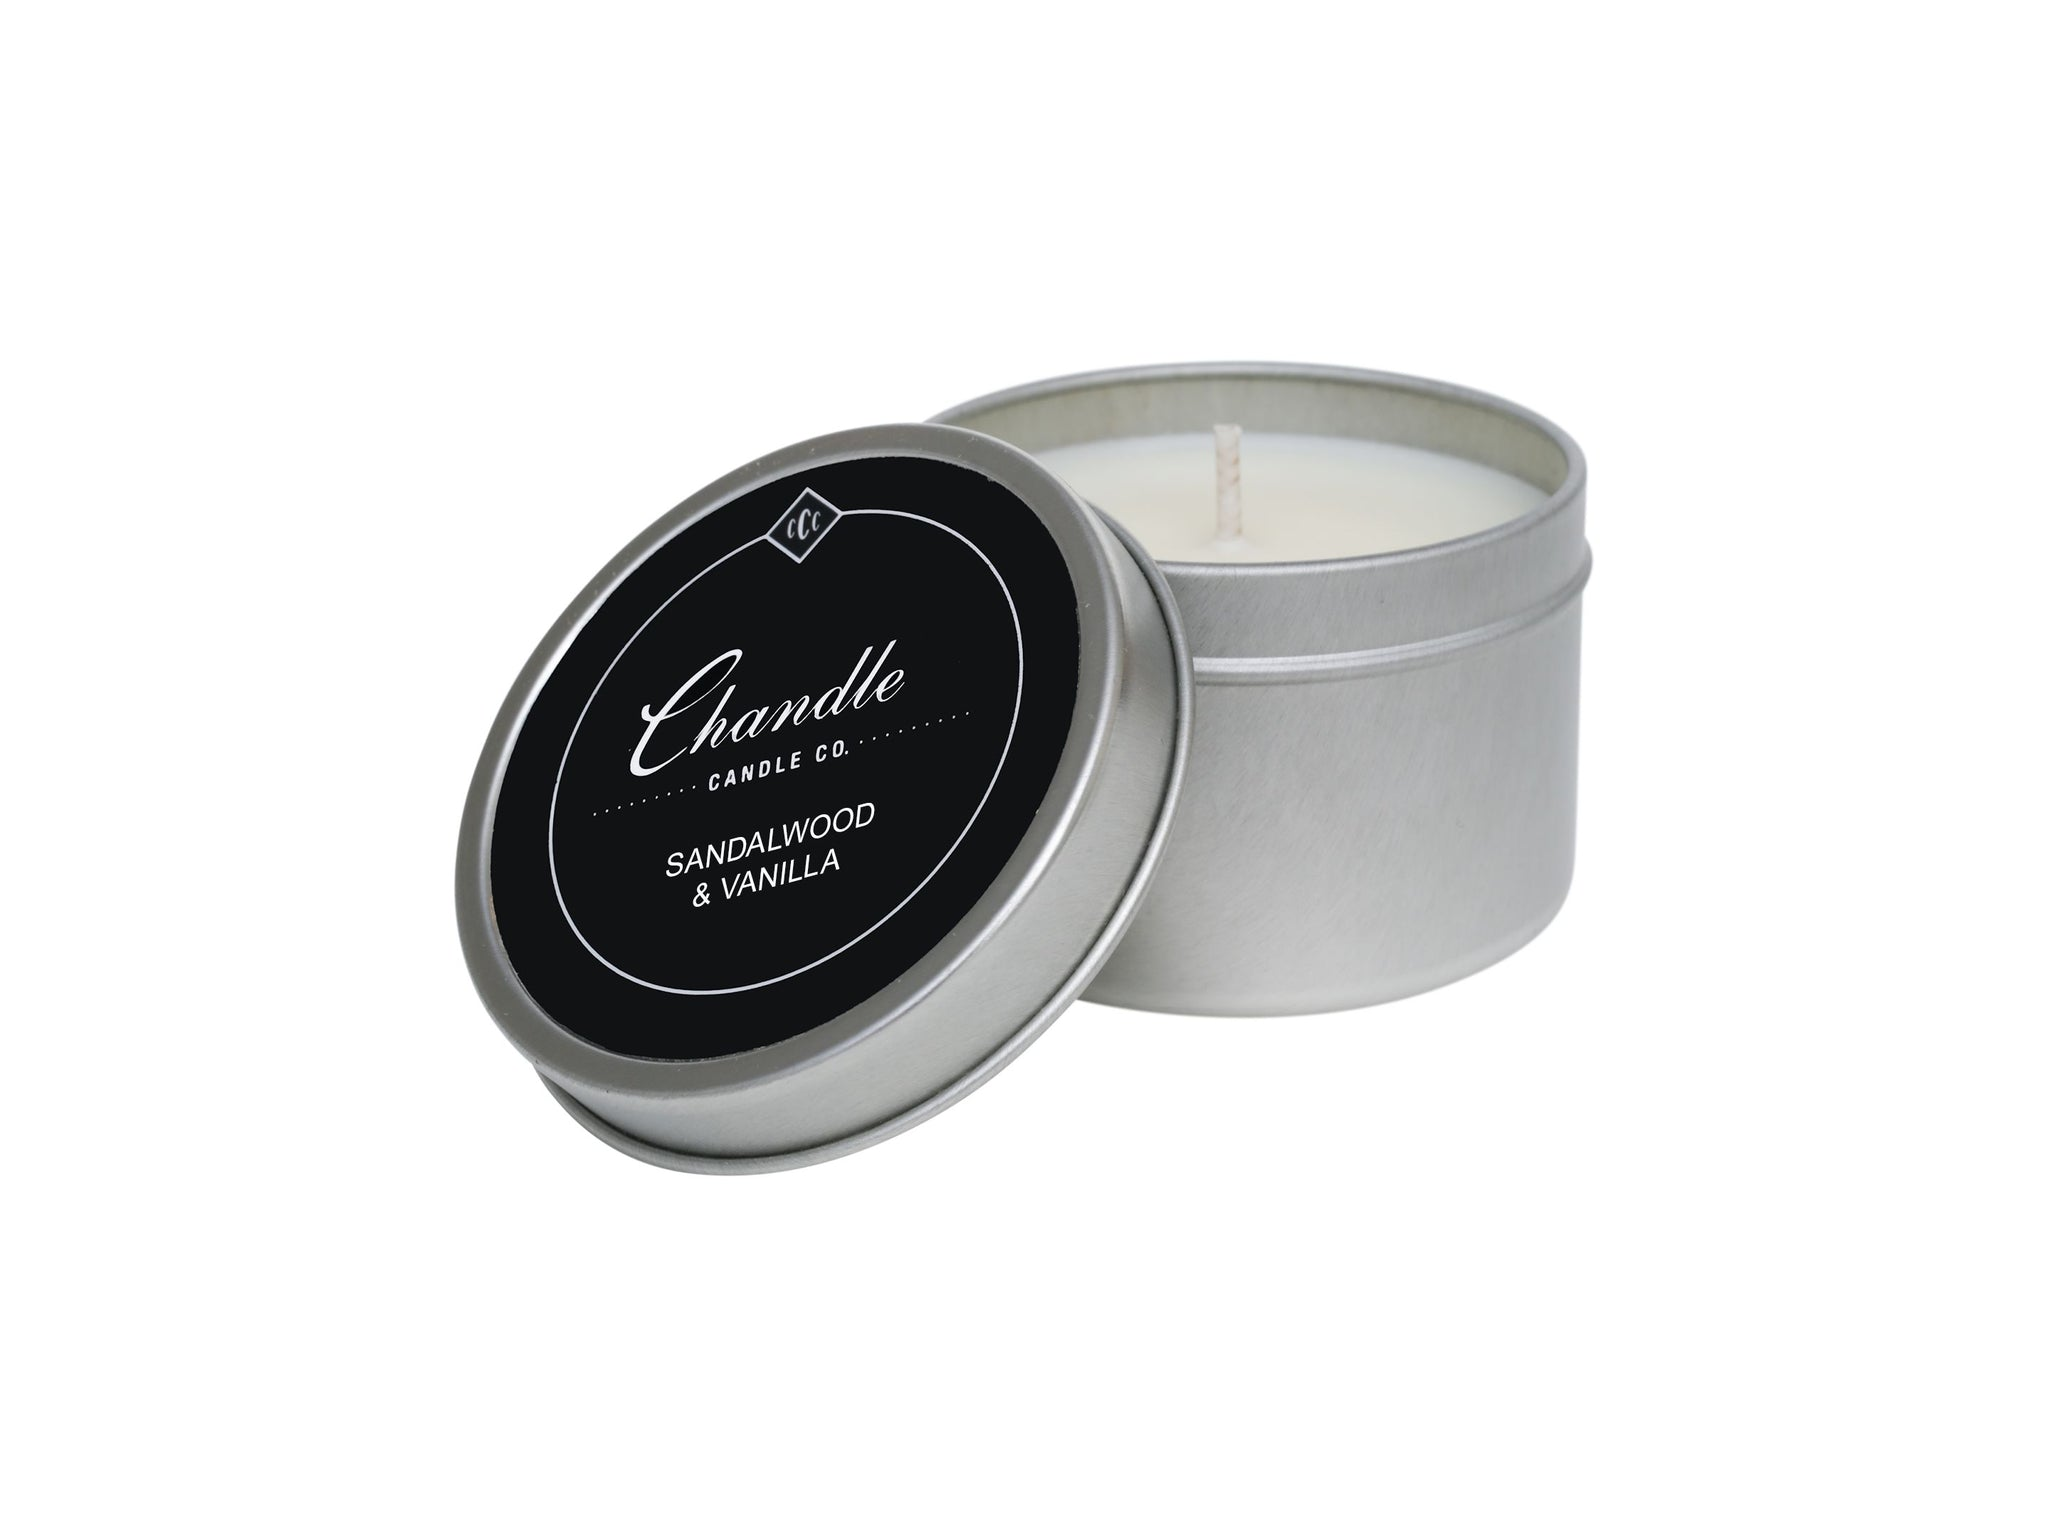 Sandalwood & Vanilla scented travel tin candle